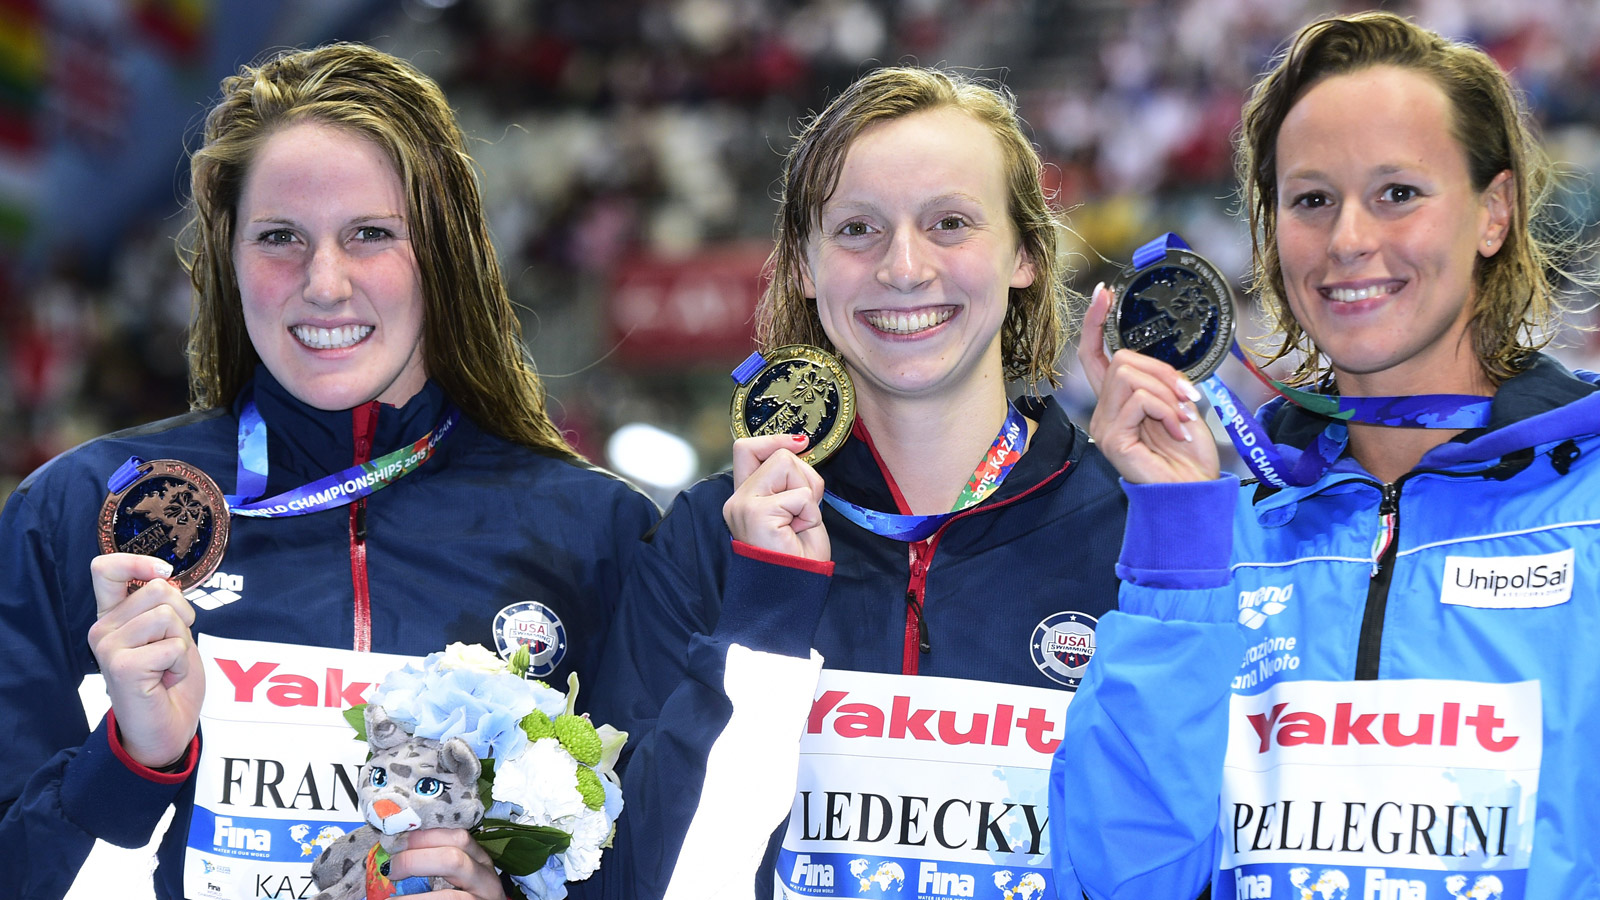 US gold medallist Katie Ledecky (C), Italy's silver medallist Federica Pellegrini (R) and US bronze medallist Missy Franklin pose on the podium of the women's 200m freestyle swimming event at the 2015 FINA World Championships in Kazan on Aug. 5, 2015. (credit: MARTIN BUREAU/AFP/Getty Images)